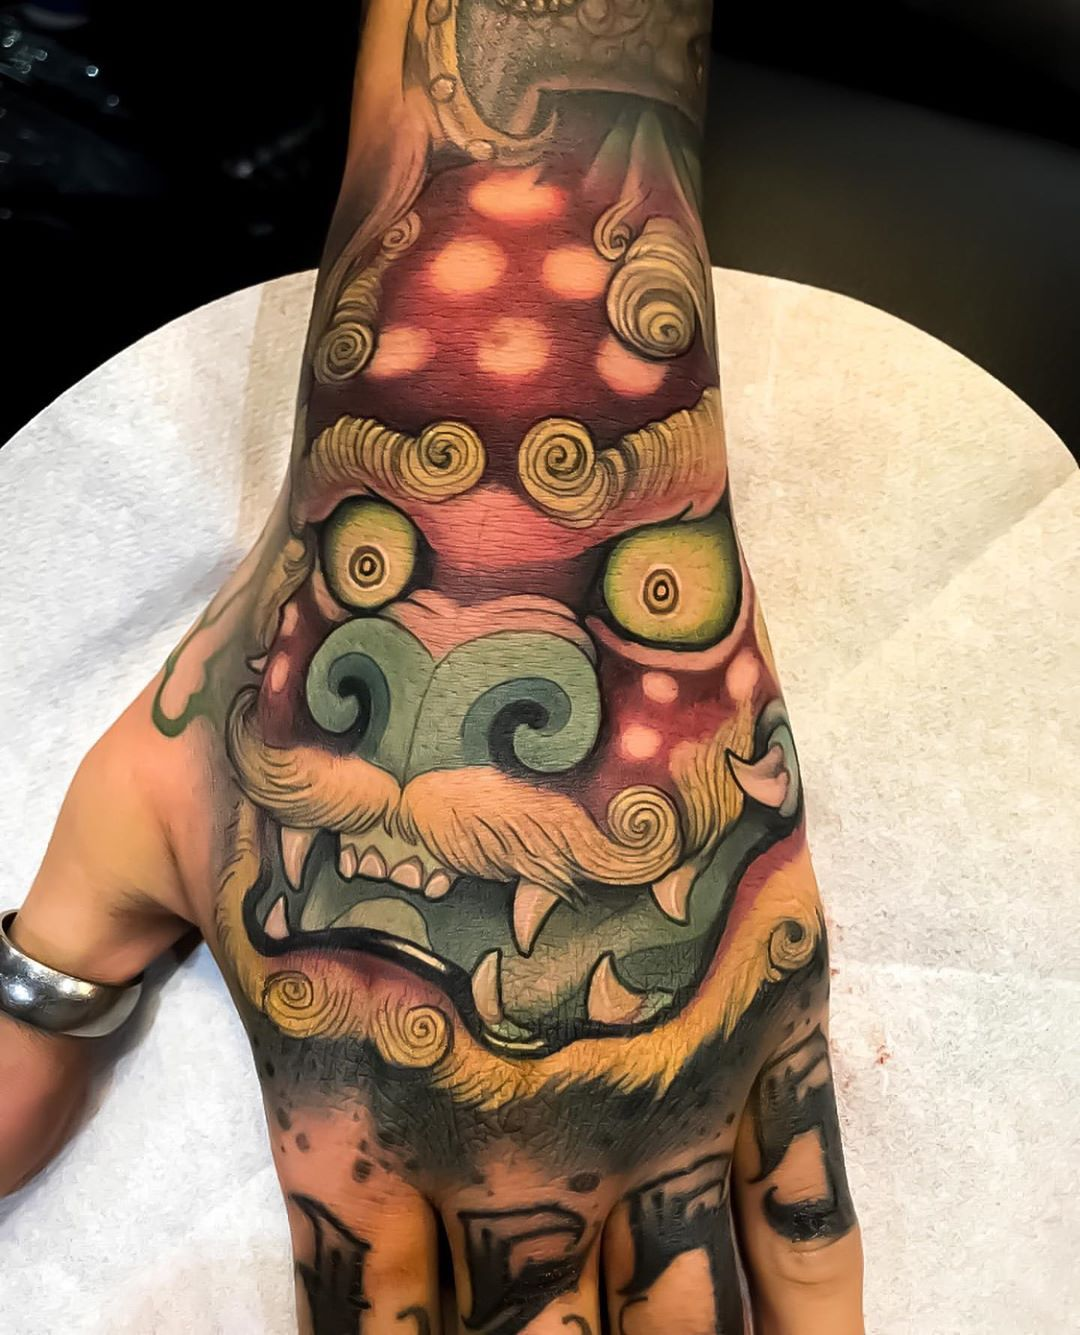 Japanese Ink On Instagram Japanese Inspired New School Foo Dog Hand Tattoos By Victor Chil Swipe Left To Hand Tattoos Foo Dog Tattoo Tattoo Japanese Style